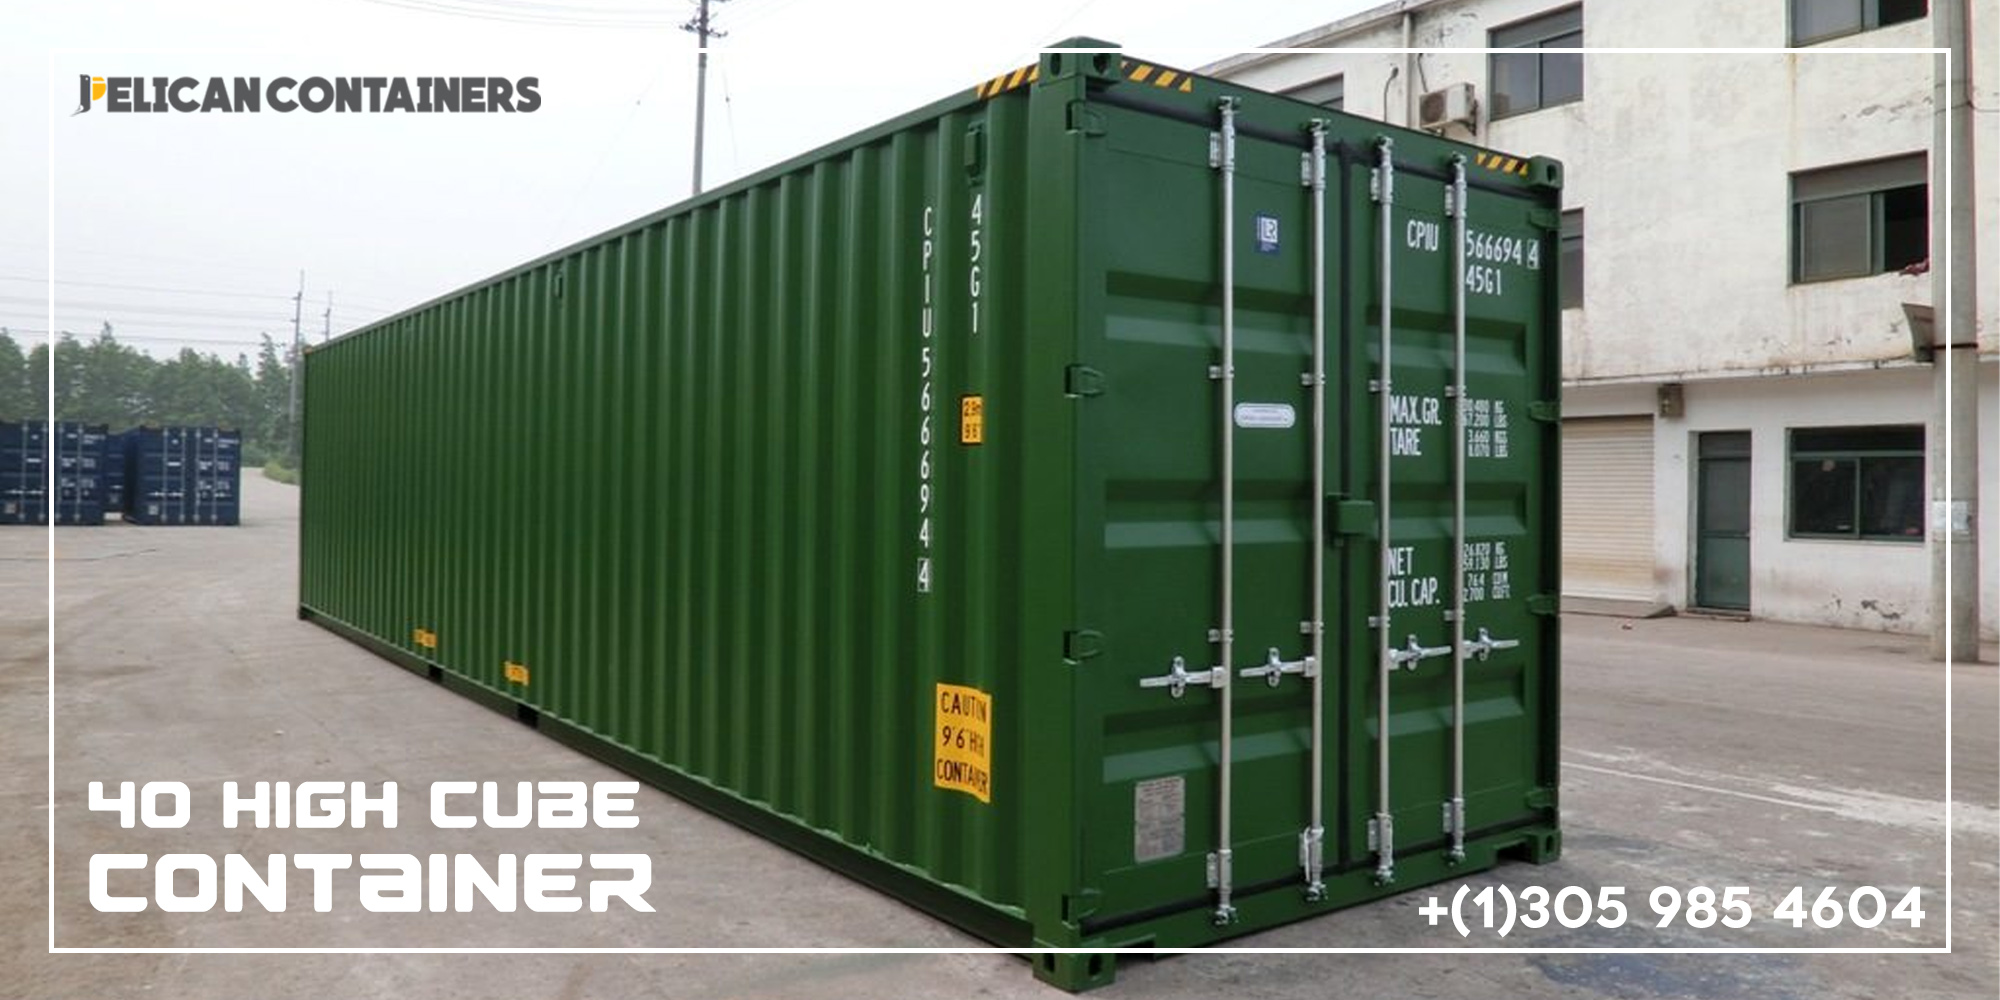 40HC CW Used Container for Sale in Boston - Pelican Containers